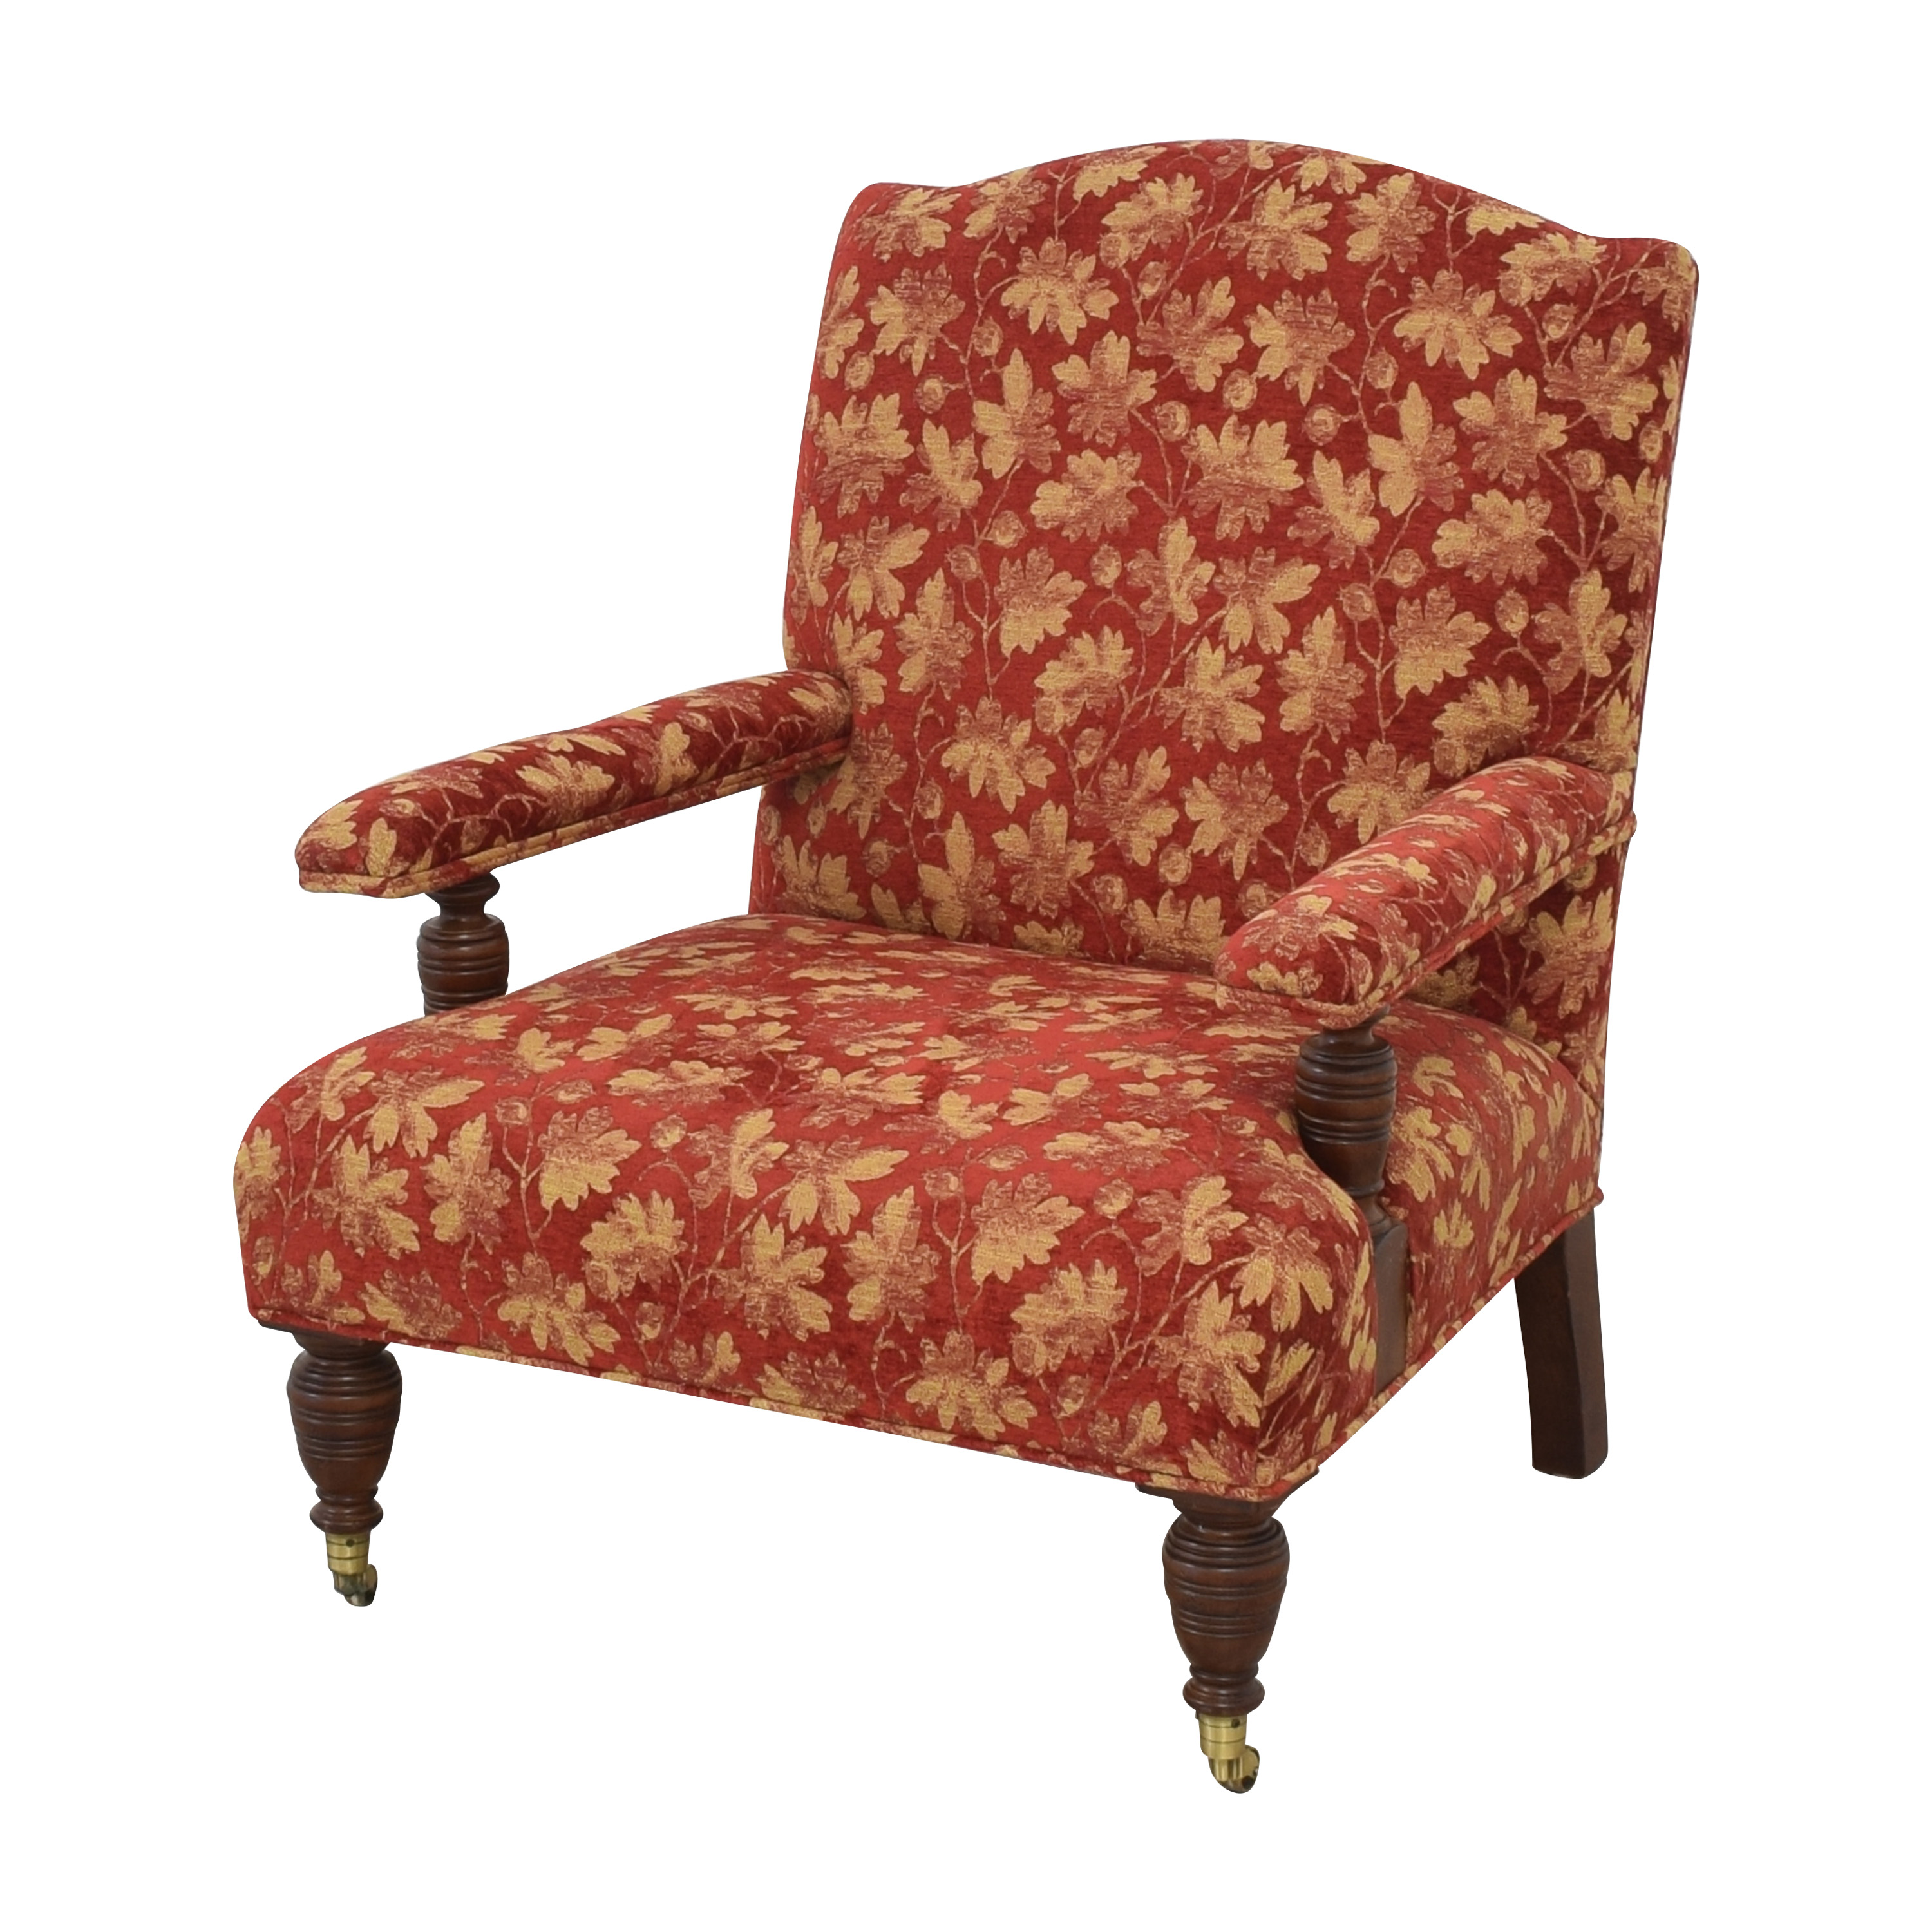 Lee Jofa Lee Jofa Draycott Accent Chair Accent Chairs